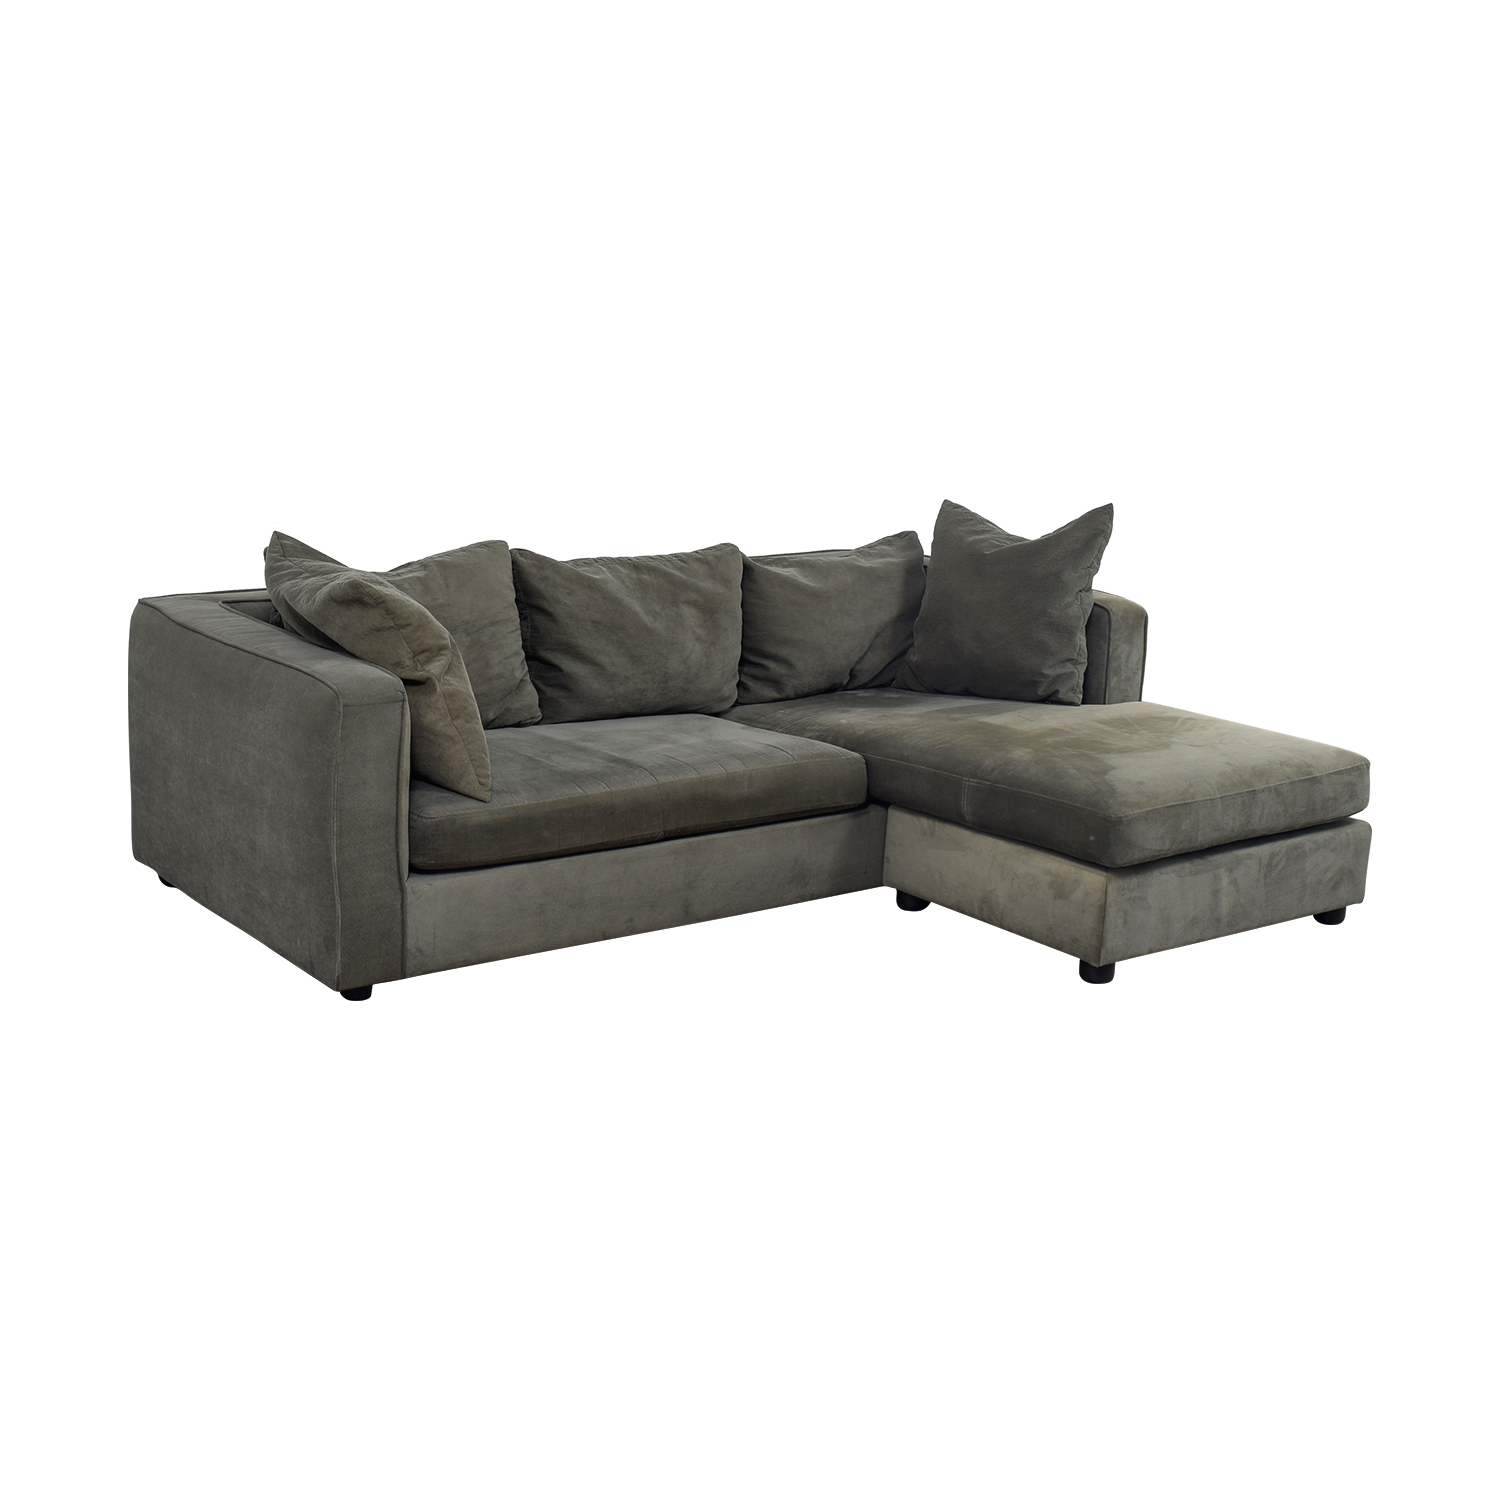 76% OFF - ABC Carpet & Home ABC Carpet & Home Grey L- Shaped Couch / Sofas